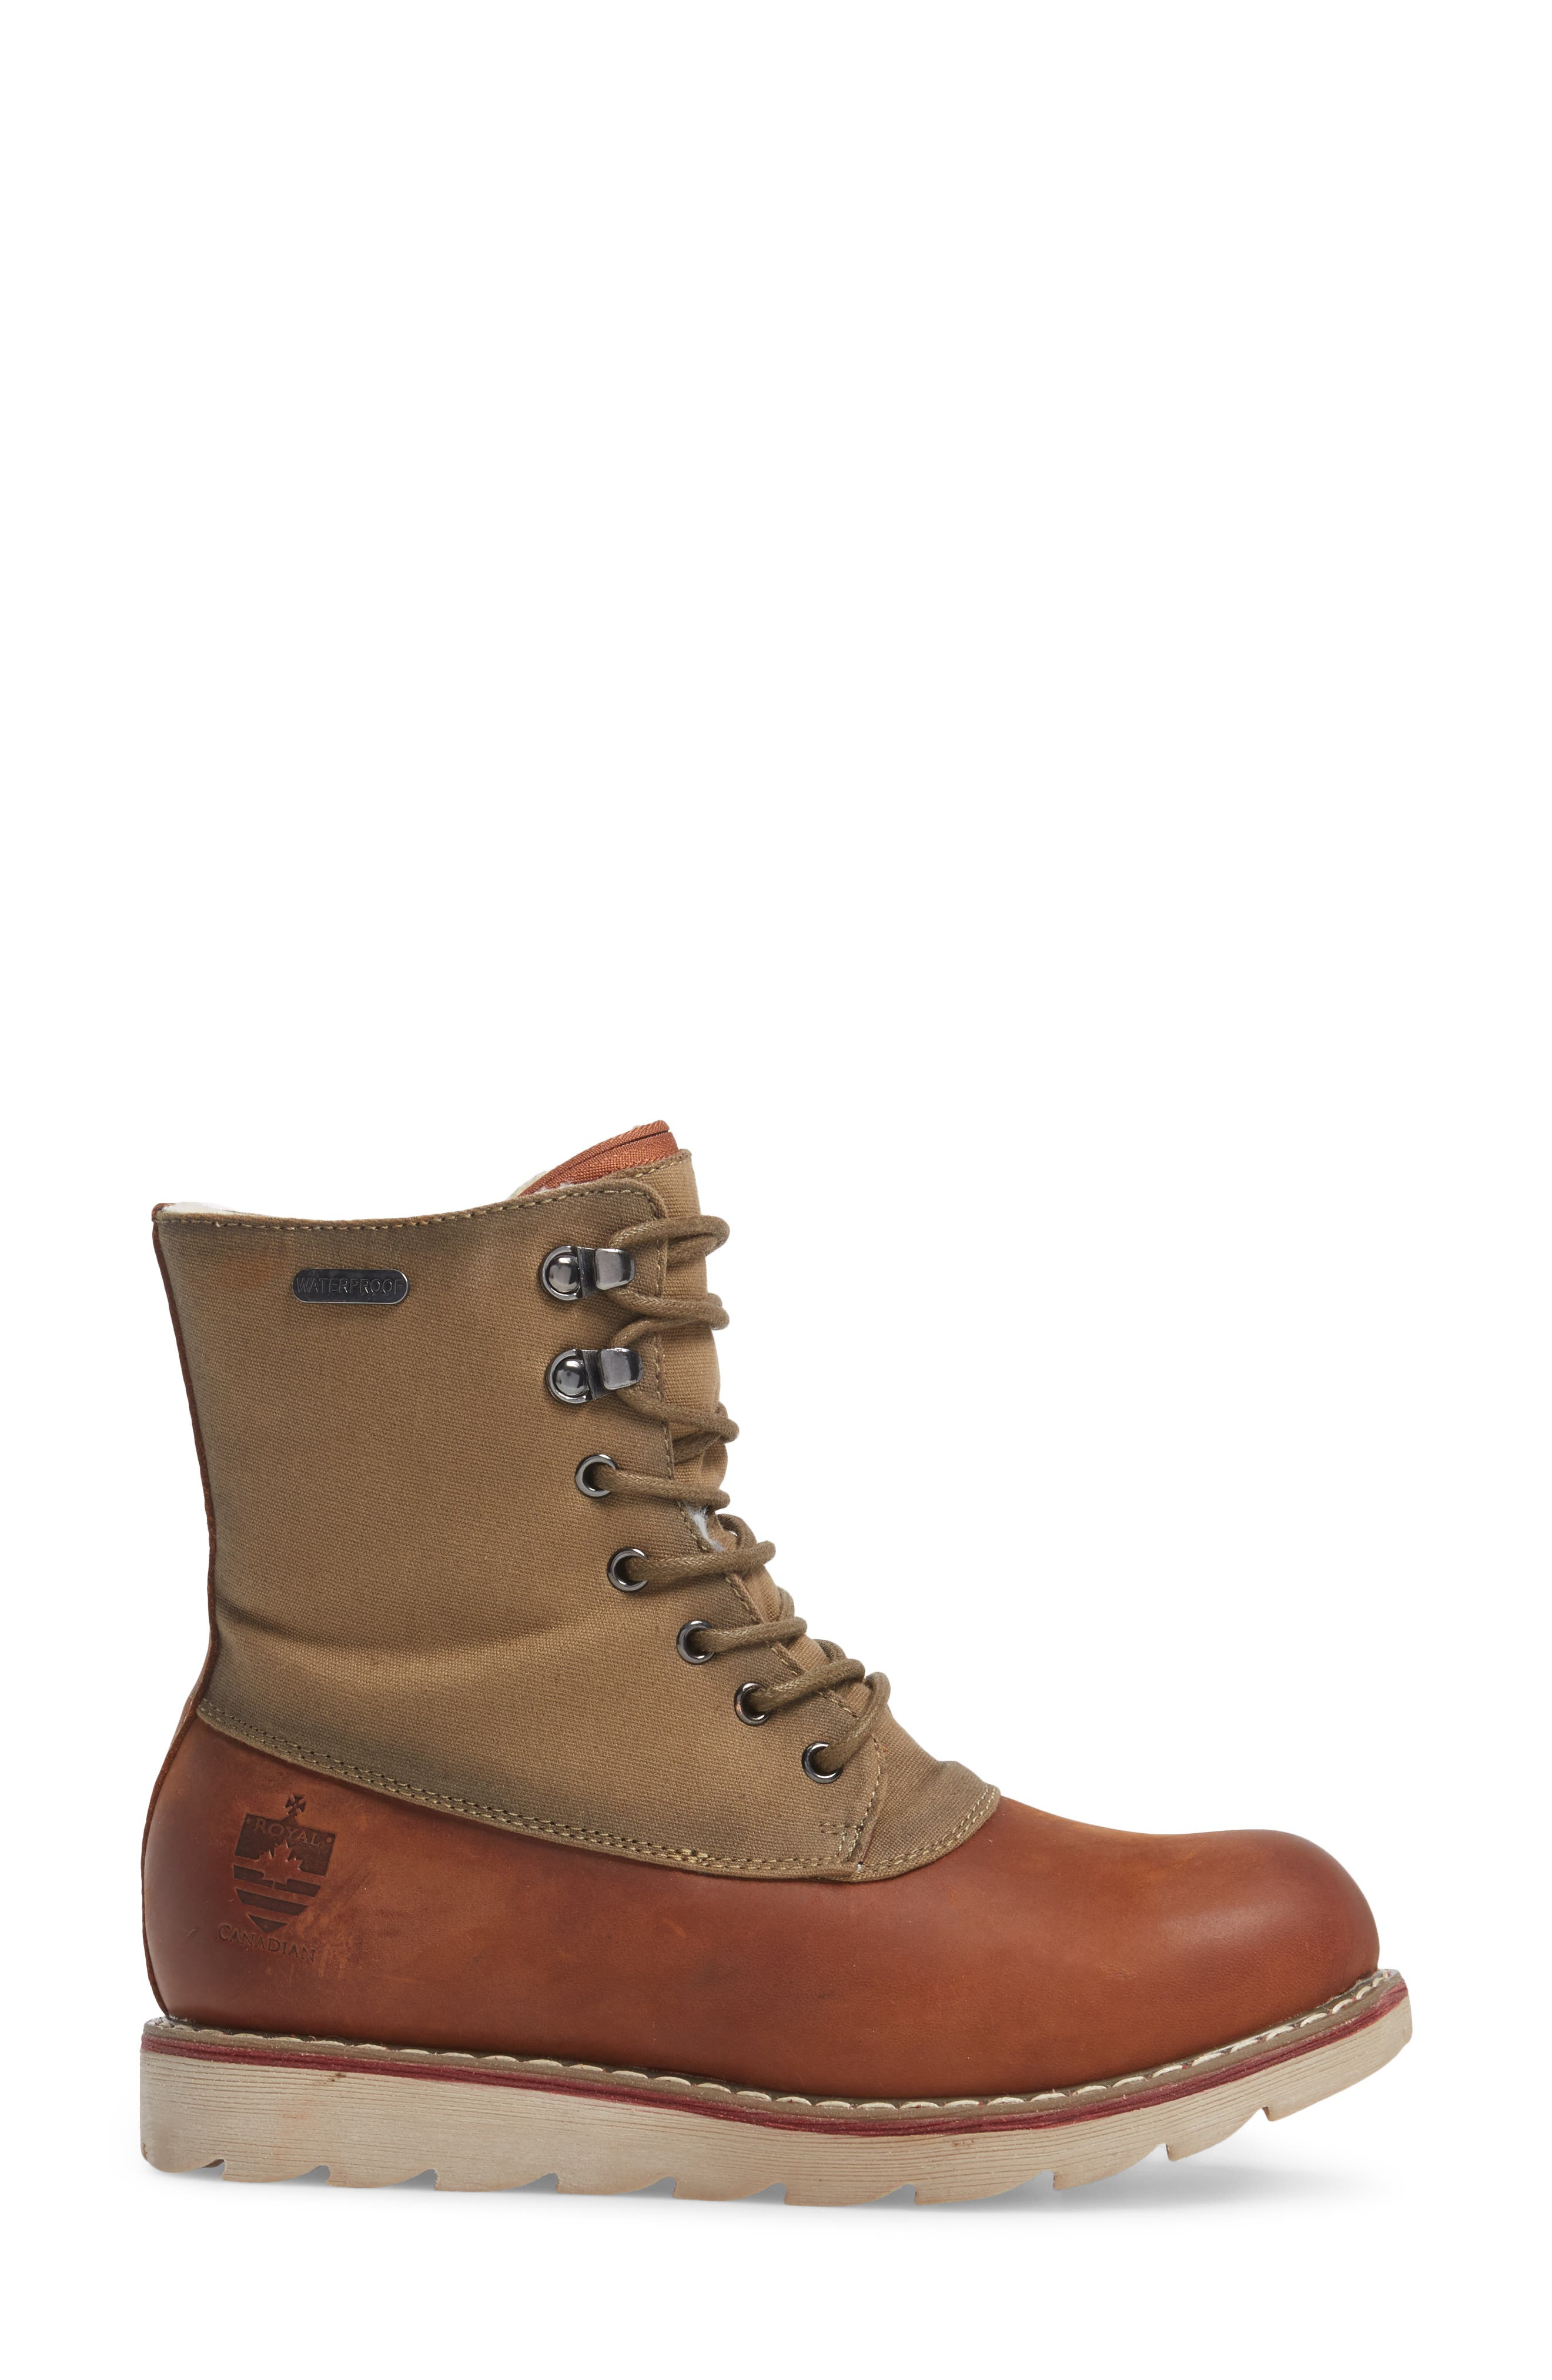 LaSalle Waterproof Insulated Winter Boot,                             Alternate thumbnail 3, color,                             Cognac Leather